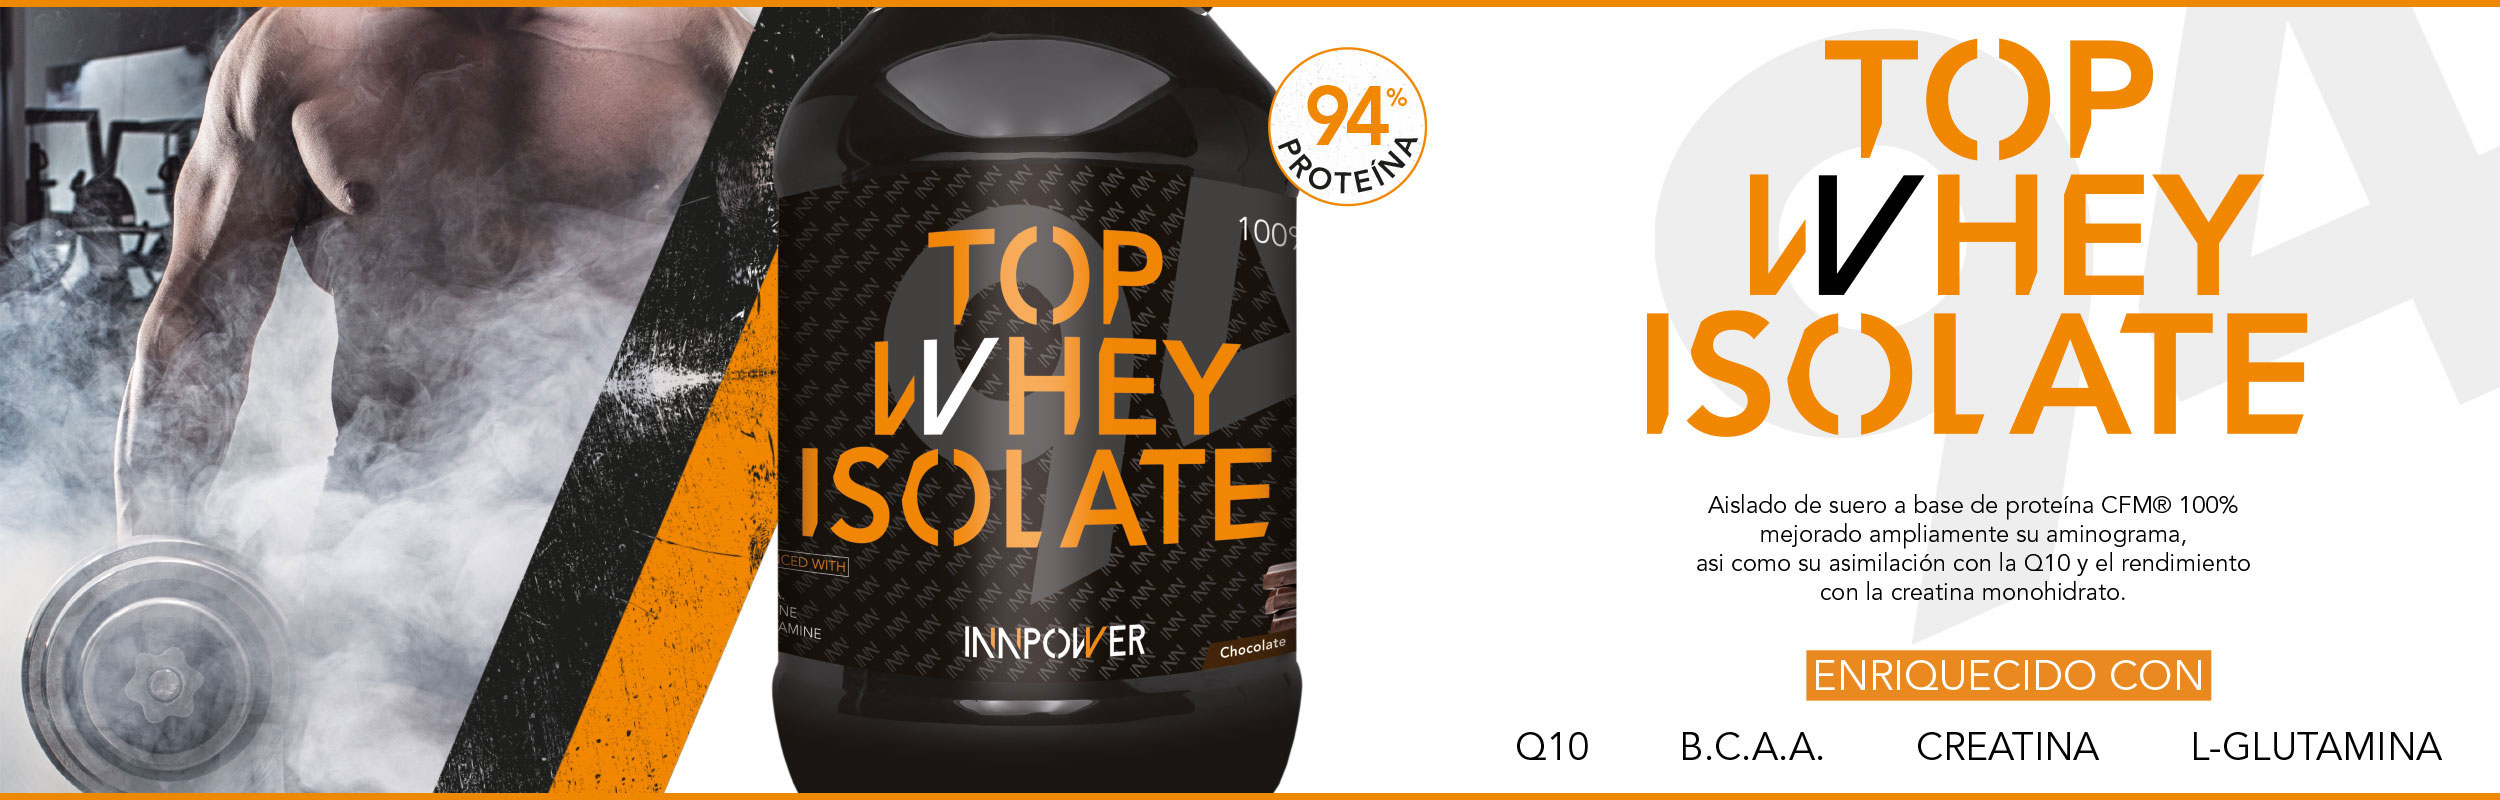 Proteína Top whey isolate 94